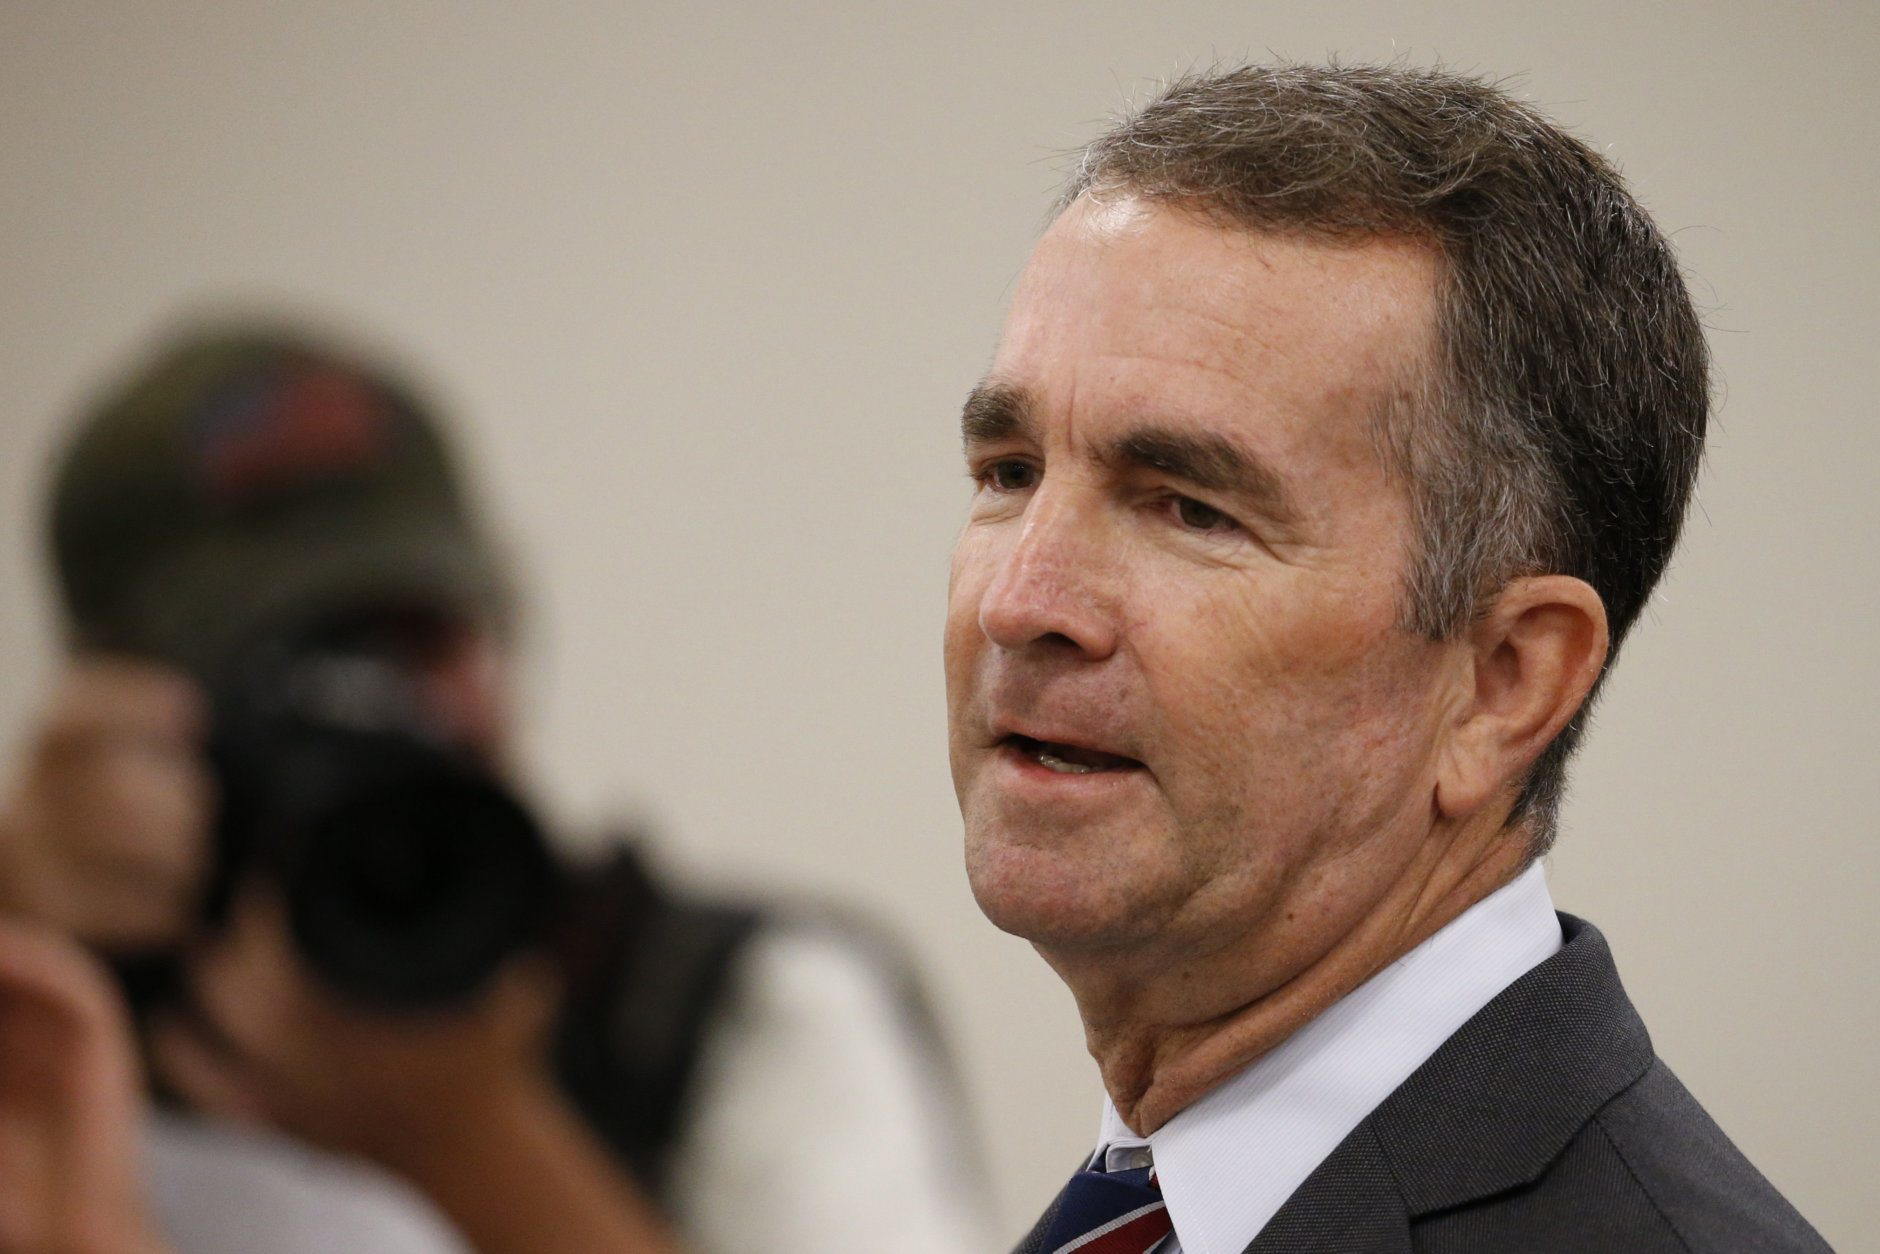 Virginia Gov. Ralph Northam delivers his budget update before a joint meeting of the House and Senate money committees at the Capitol in Richmond, Va., Tuesday, Aug. 20, 2019. (AP Photo/Steve Helber)